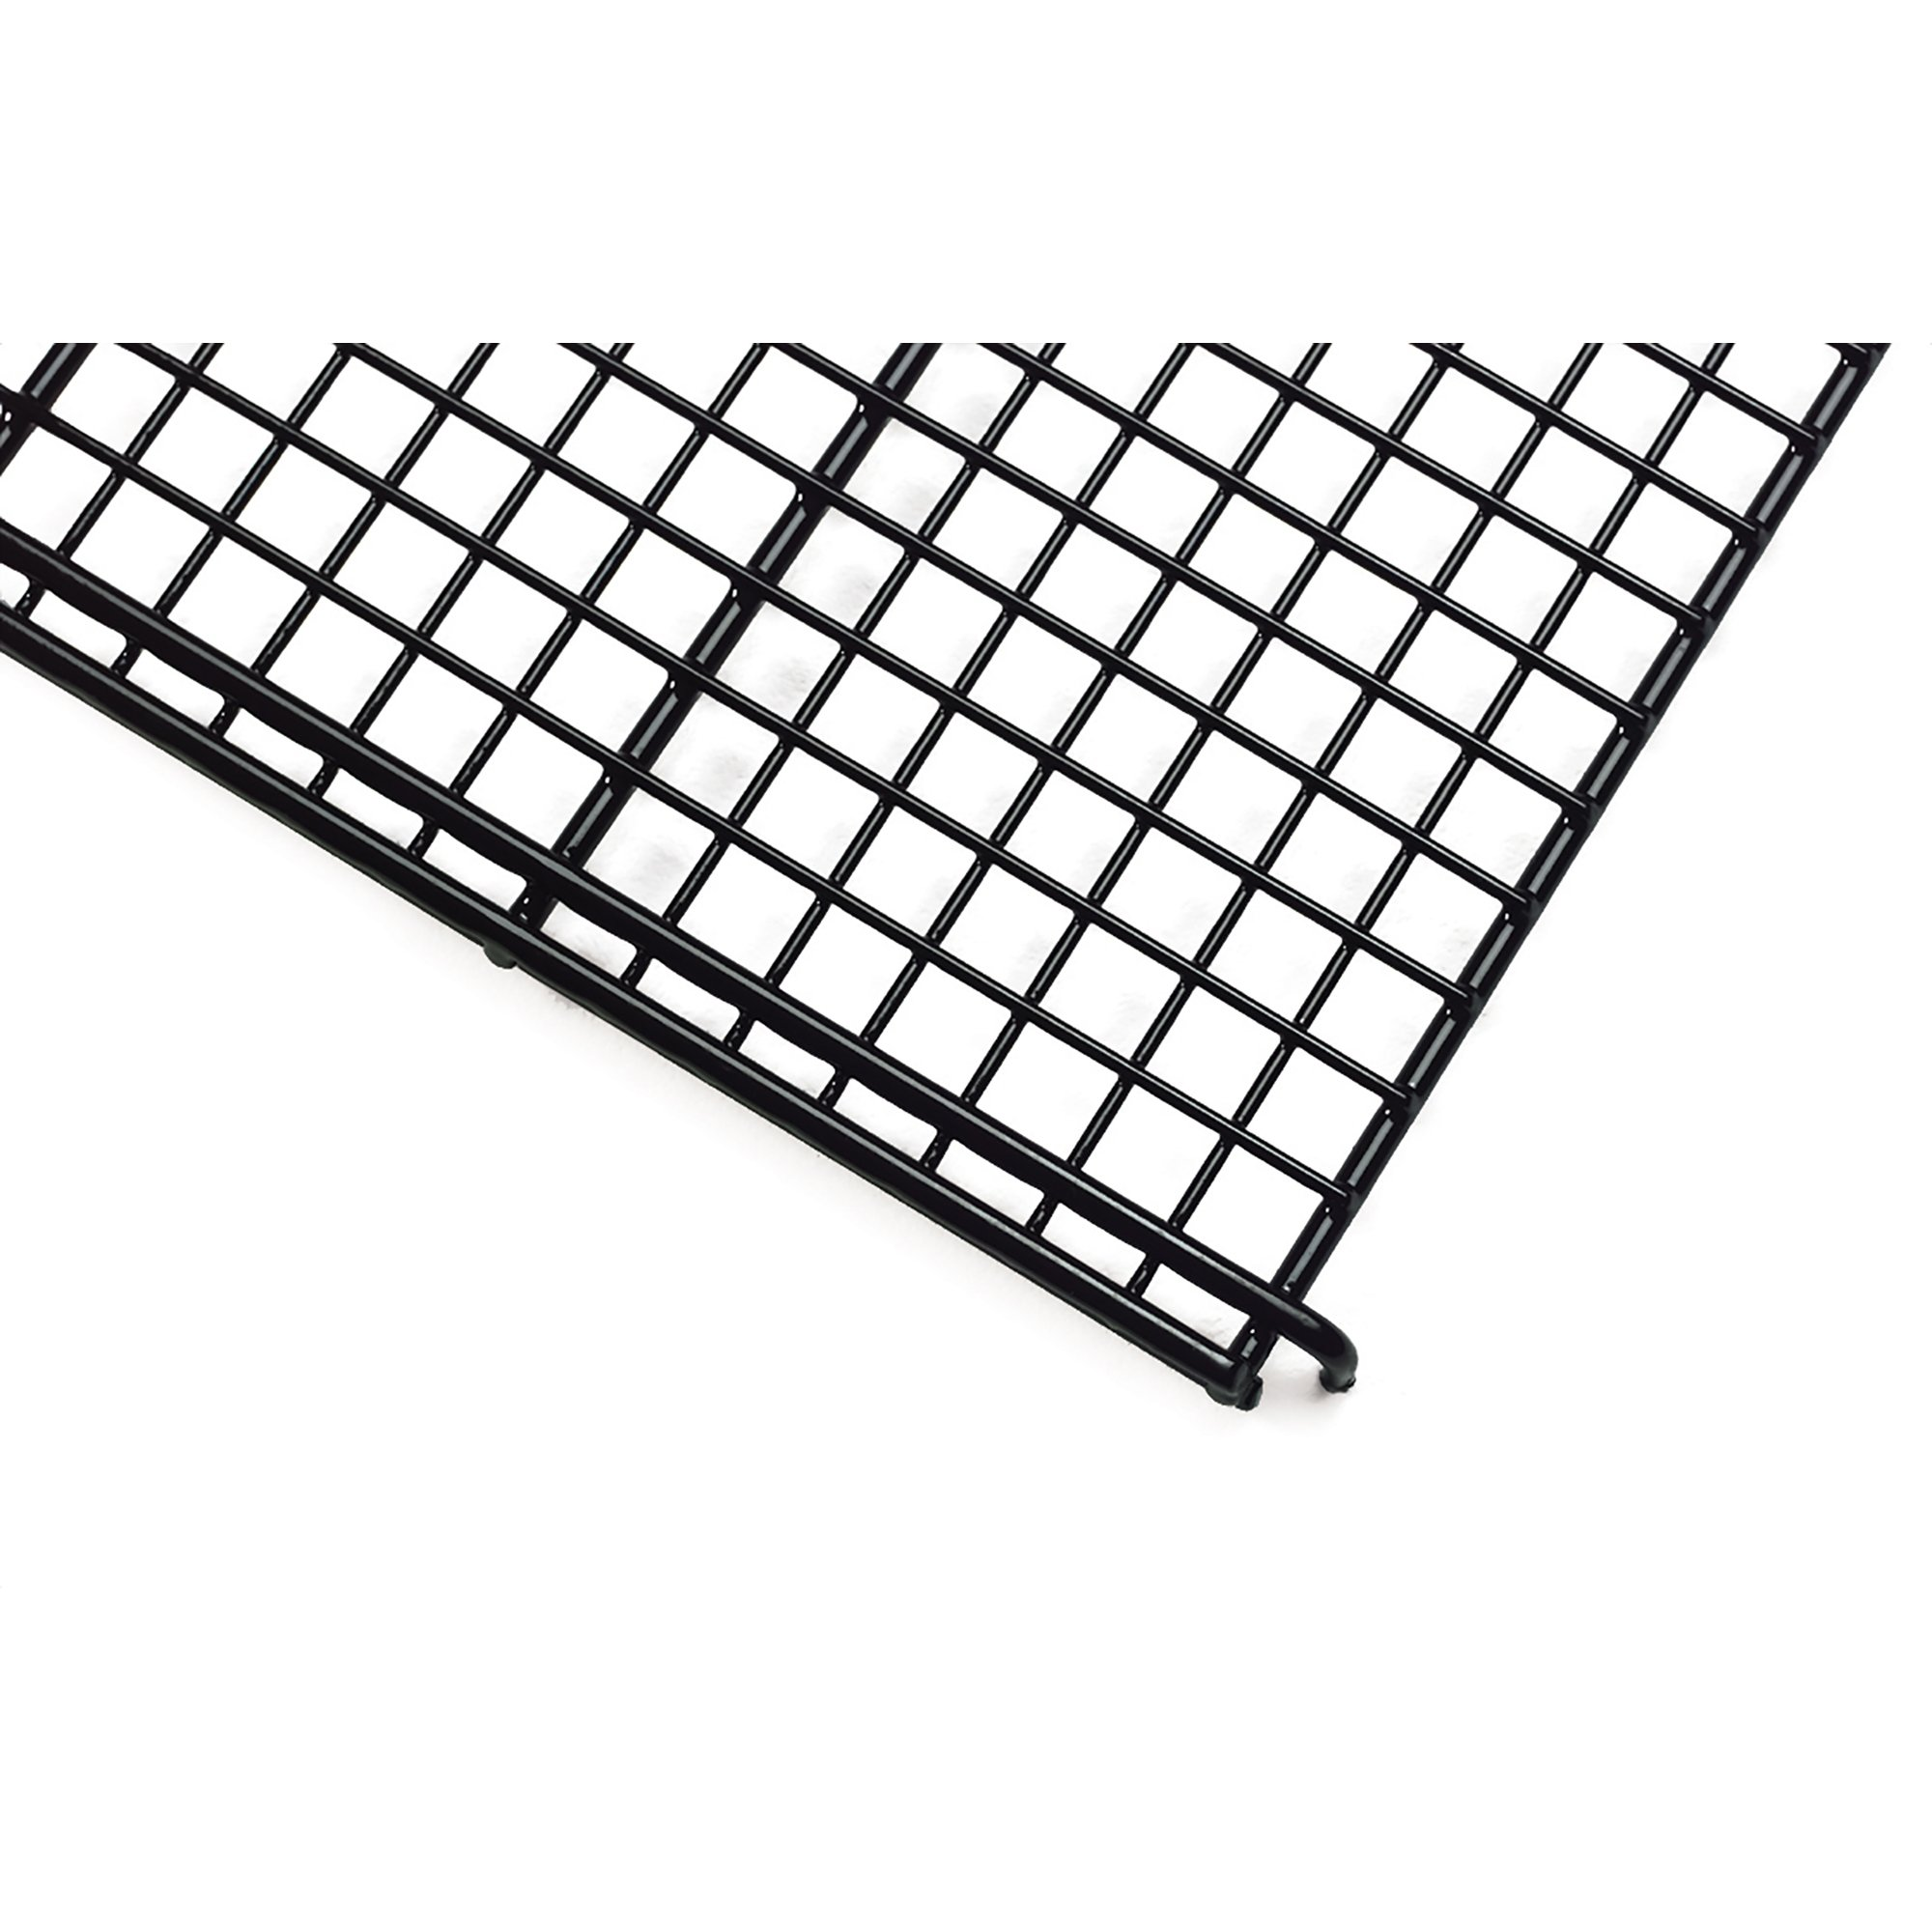 Midwest Homes For Puppy Playpen With 1 Floor Grid 36 L